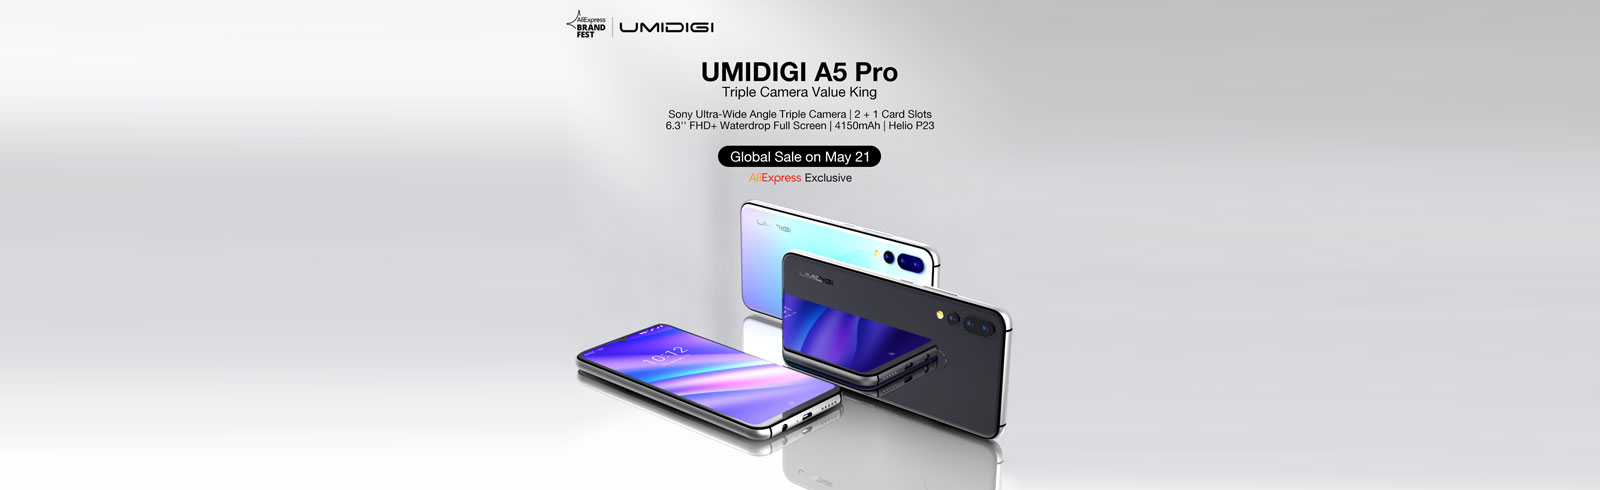 UMIDIGI A5 Pro is launched with a giveaway, global sale starts on May 21st